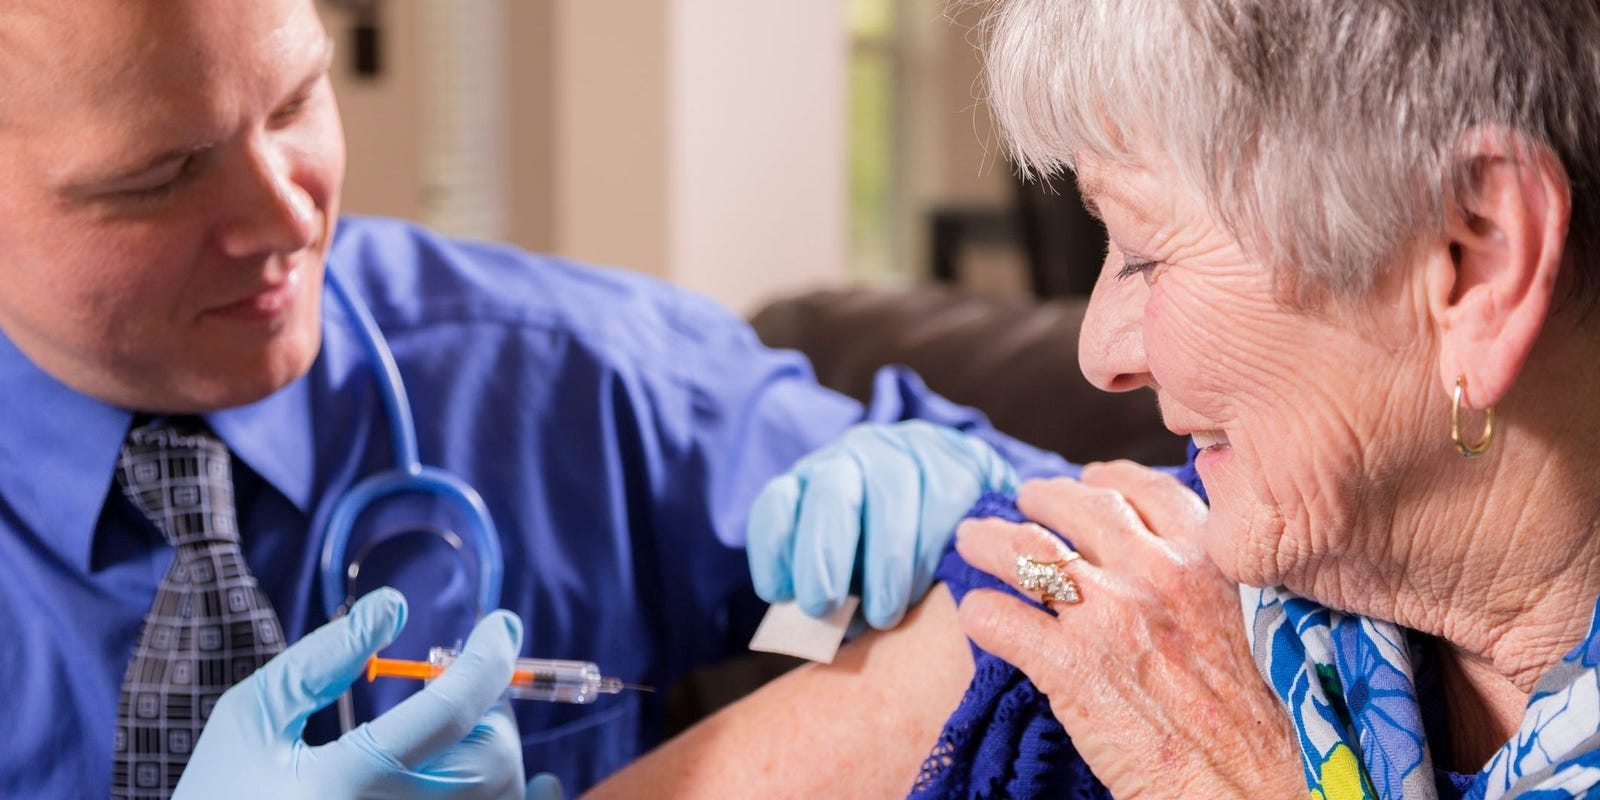 Can employers require flu shots for workers? Ask HR